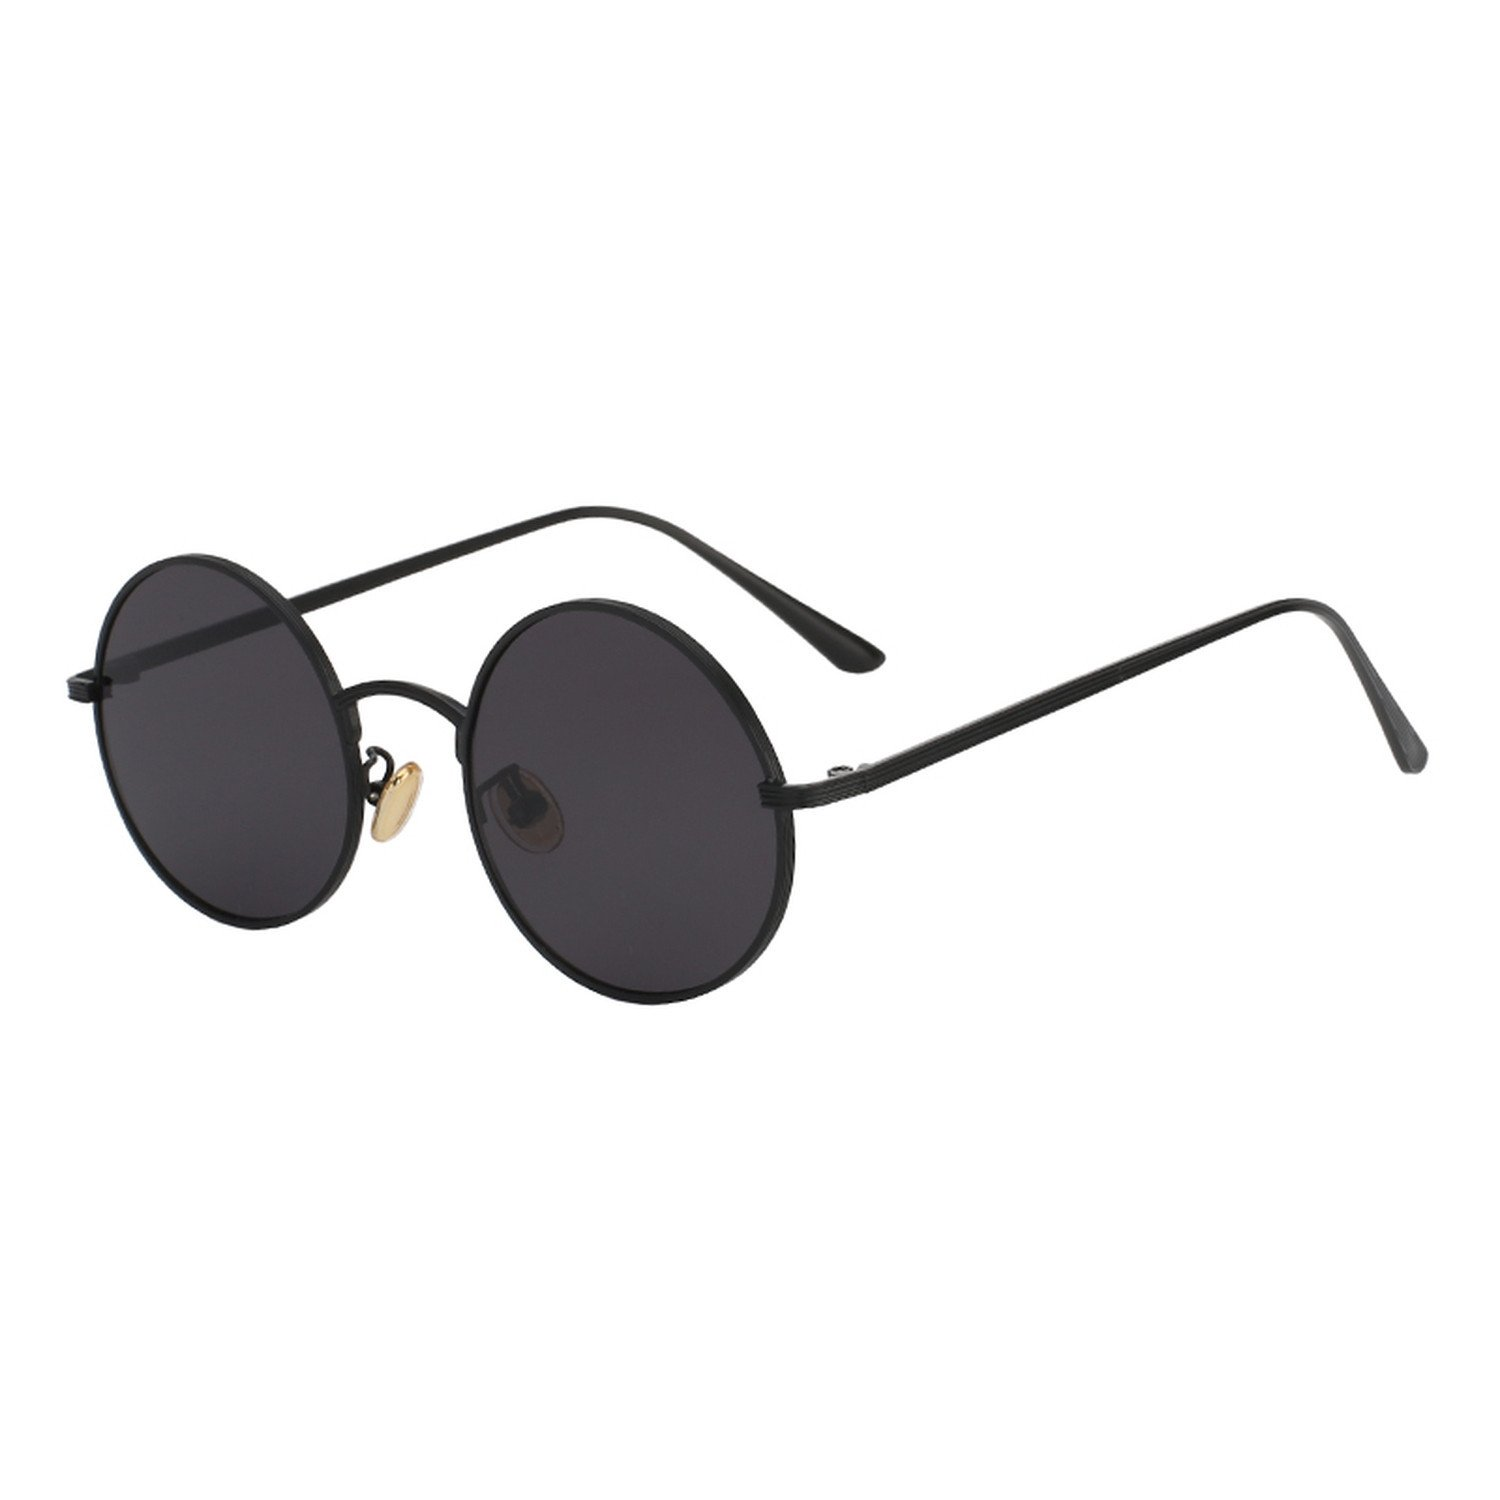 Amazon.com: Vintage Sunglasses Women Retro Round Glasses ...